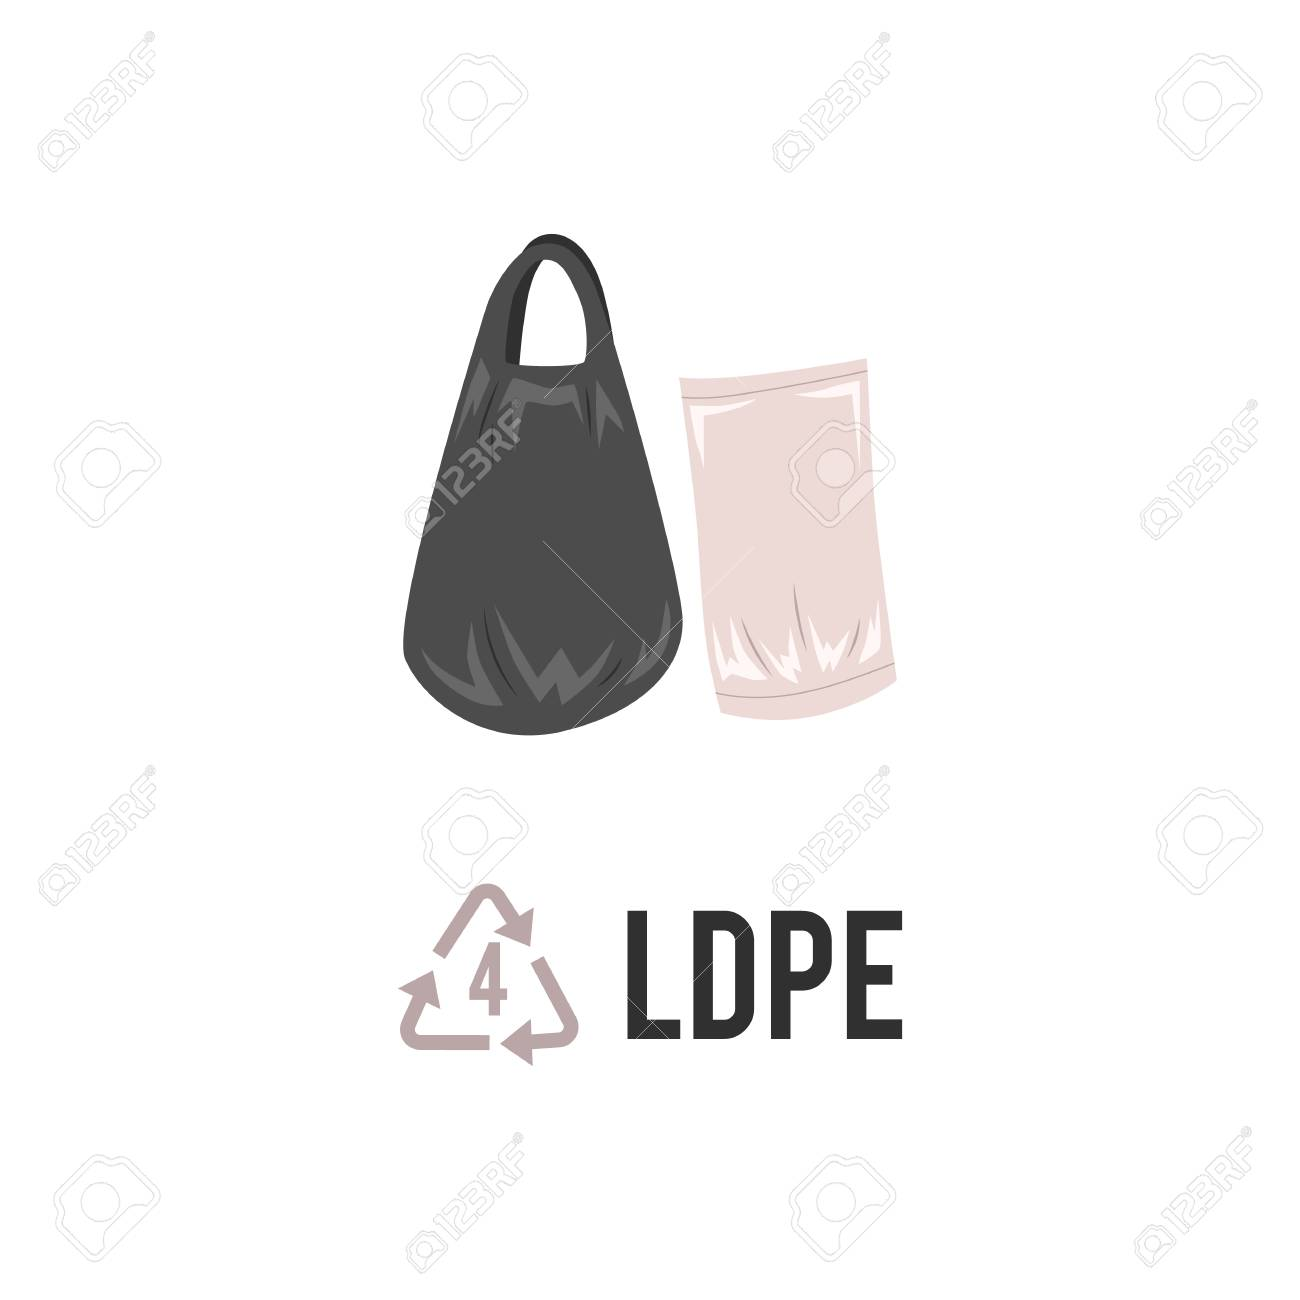 Plastic recycling icon, symbol and sign PELD, LDPE  Types of